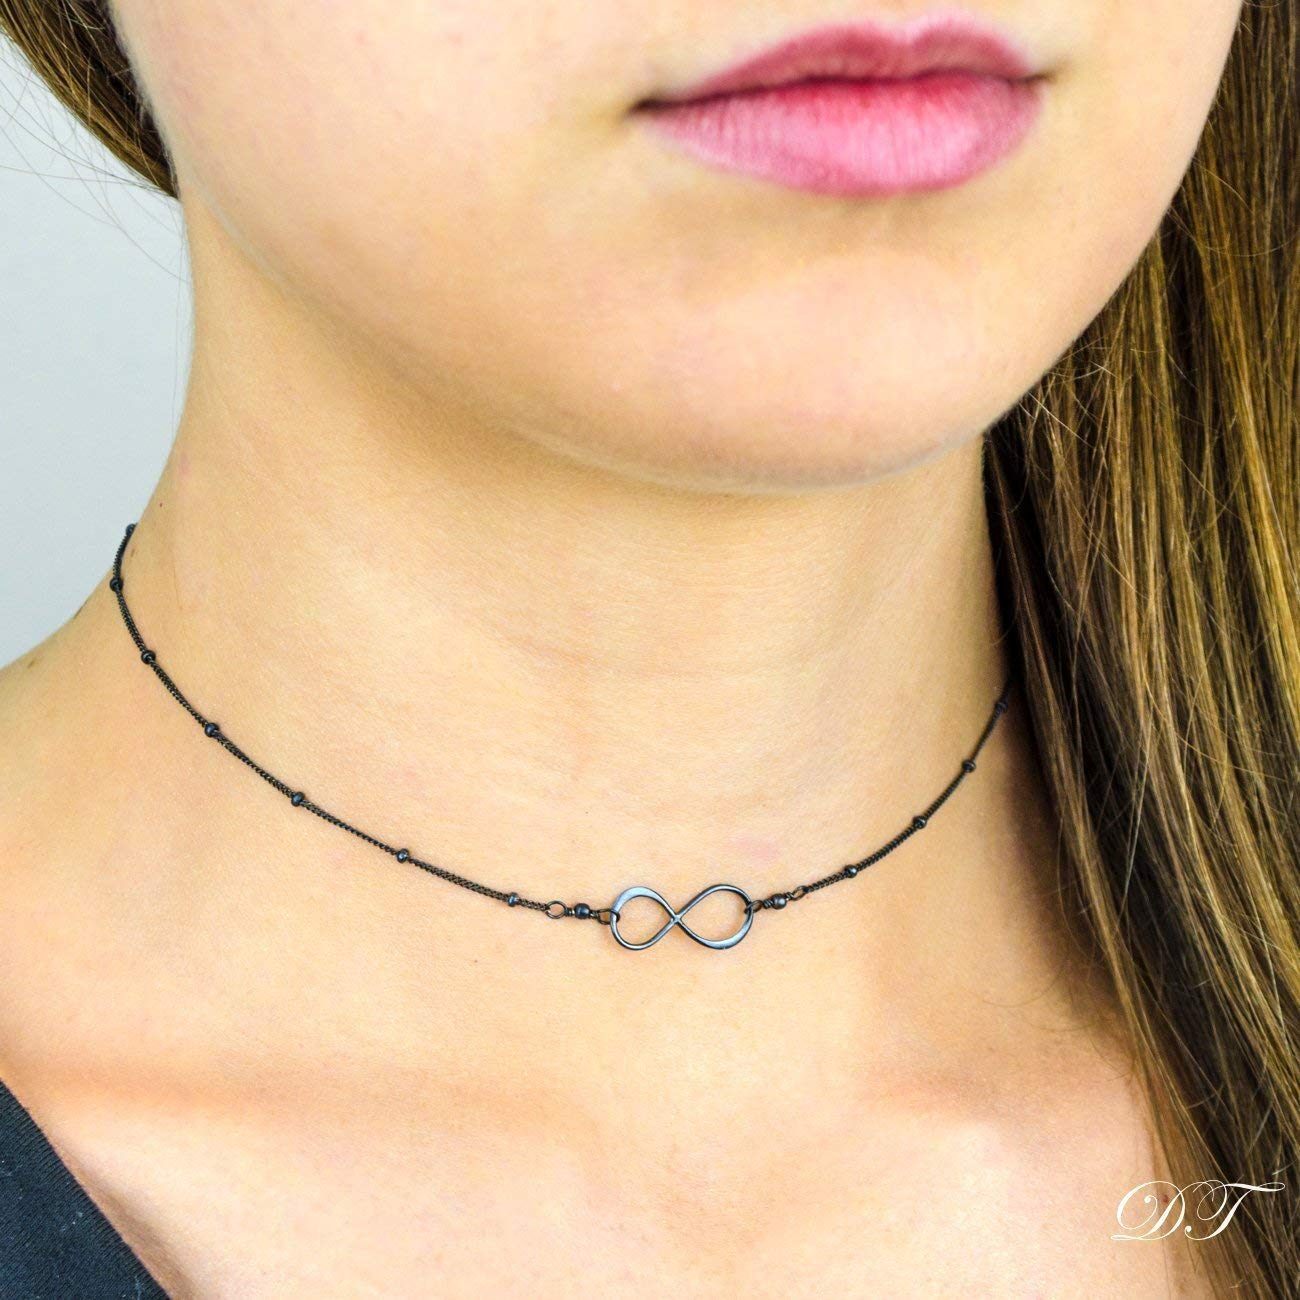 layered necklace Dainty Choker necklace infinity on satellite chain Tiny Infinity Necklace Chain Choker in Black Sterling Silver Black choker Dainty Infinity Choker